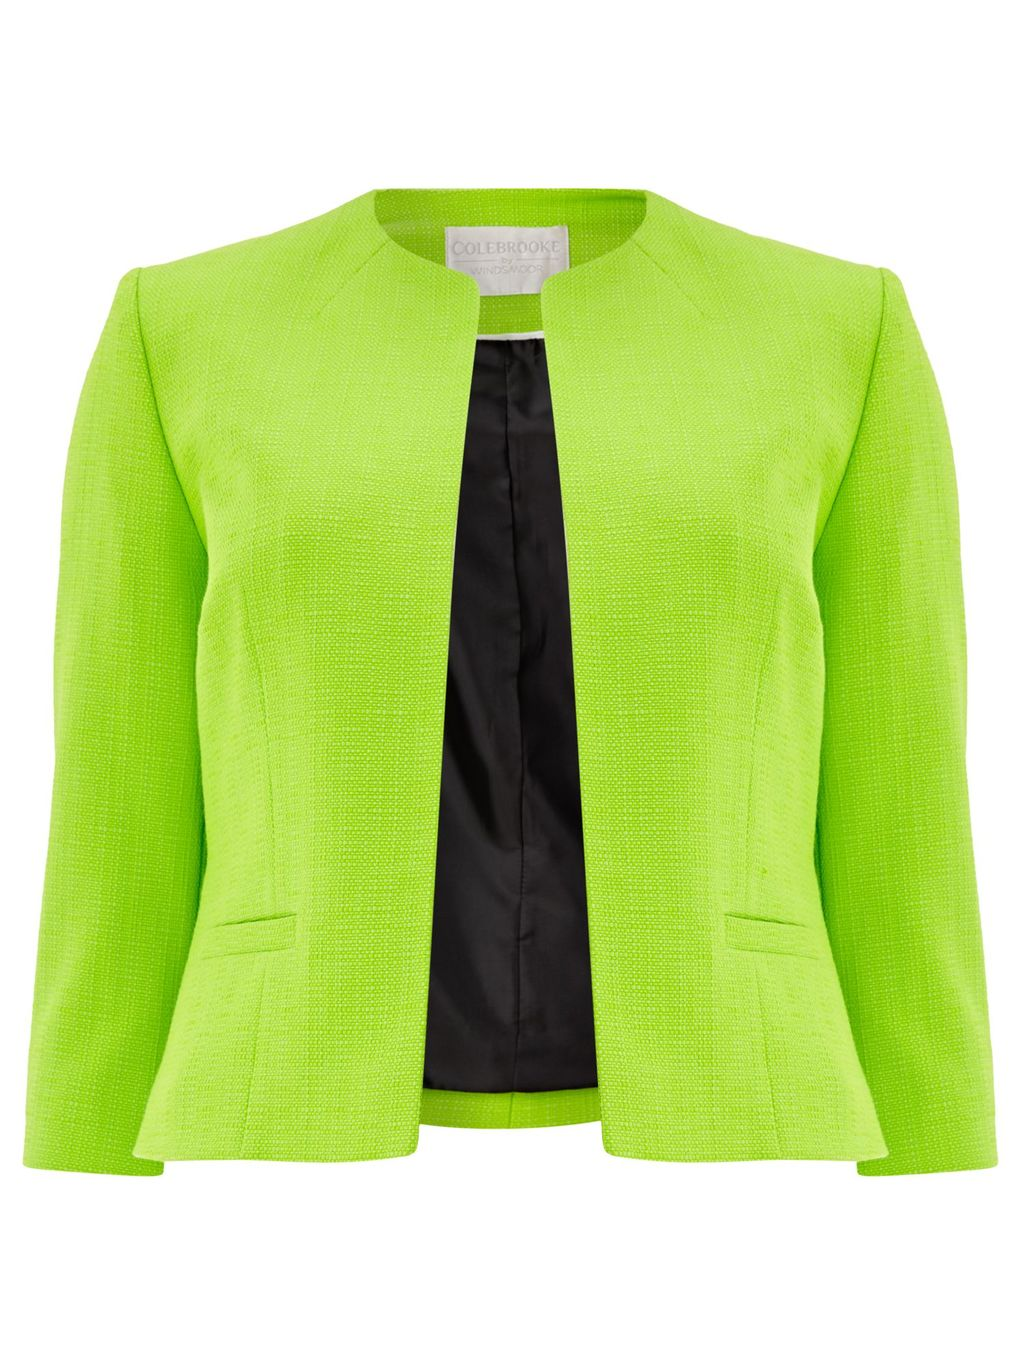 Edge To Edge Pocket Jacket, Green - pattern: plain; style: single breasted blazer; collar: round collar/collarless; predominant colour: lime; occasions: evening, occasion, creative work; length: standard; fit: tailored/fitted; fibres: cotton - mix; sleeve length: 3/4 length; sleeve style: standard; collar break: high/illusion of break when open; pattern type: fabric; texture group: woven light midweight; season: s/s 2016; wardrobe: investment